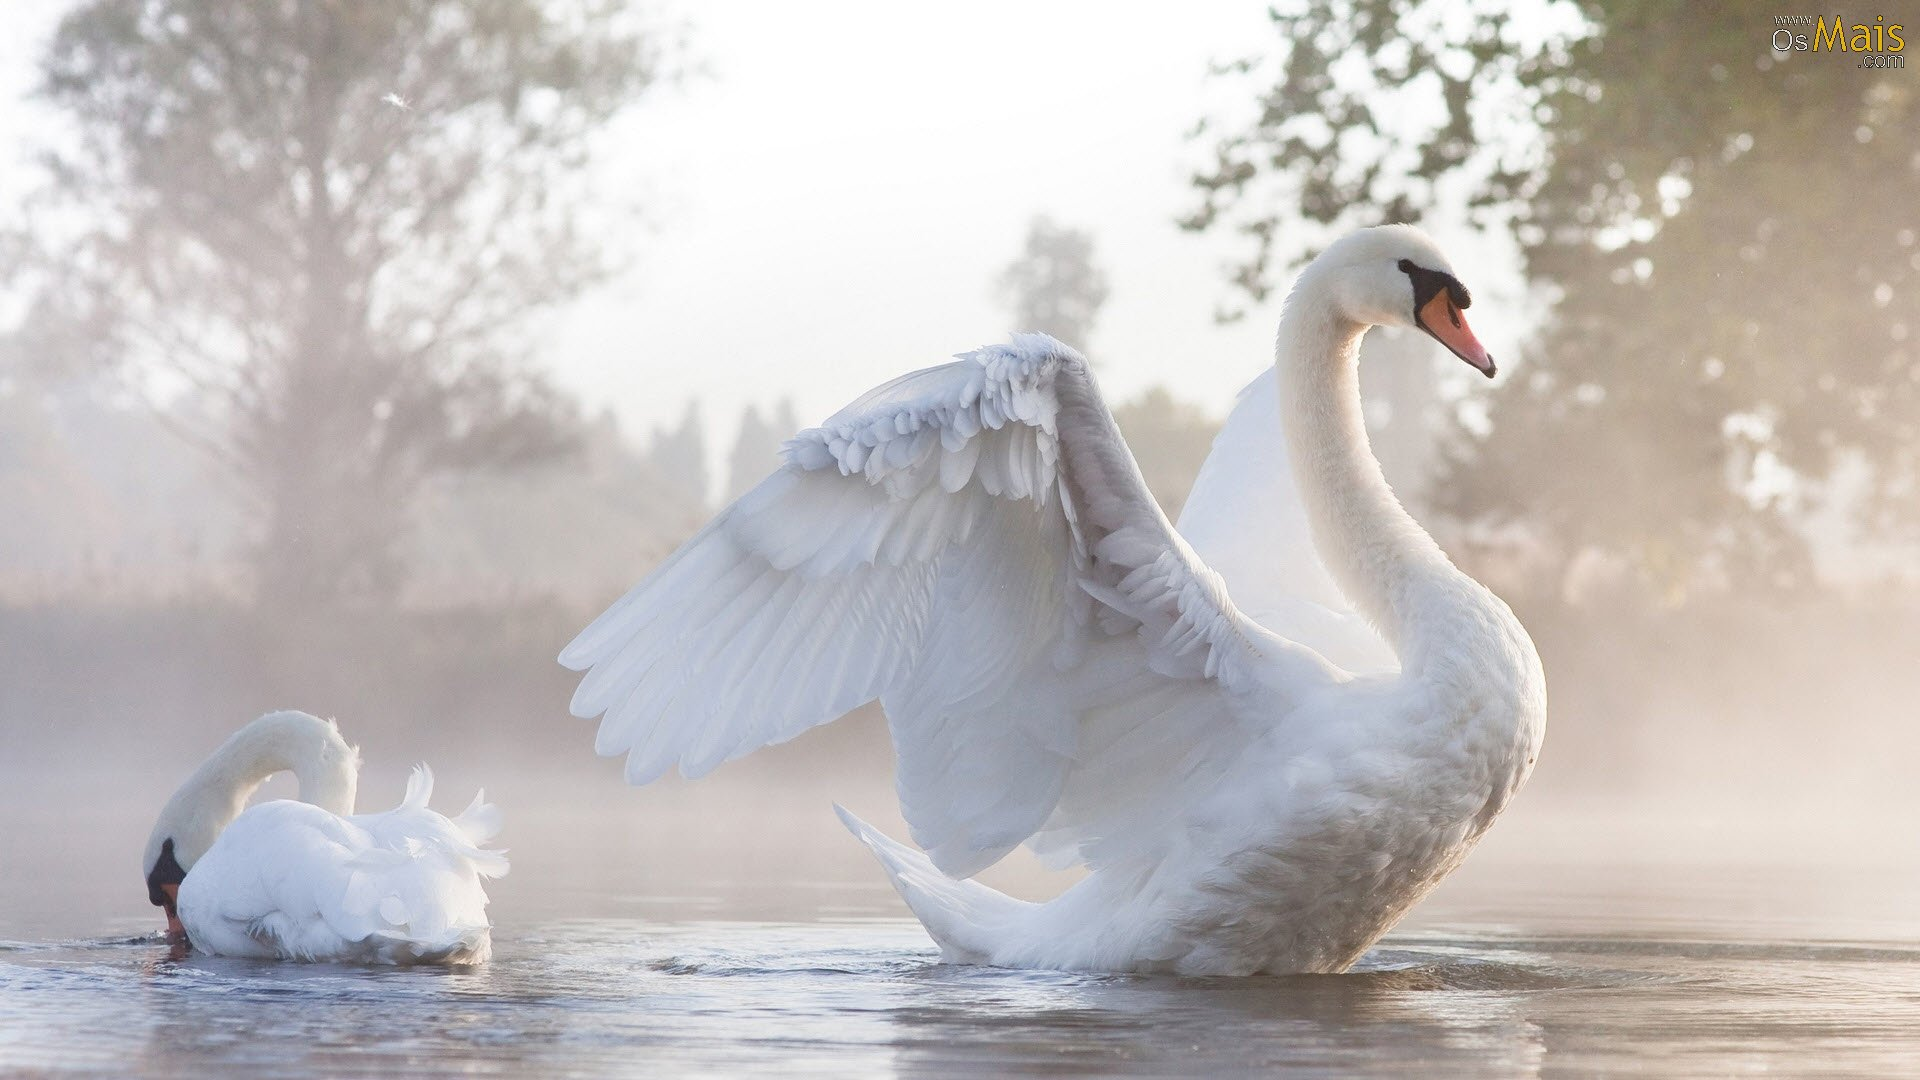 http://www.osmais.com/wallpapers/201602/cisne-branco-natureza-animais-wallpaper.jpg